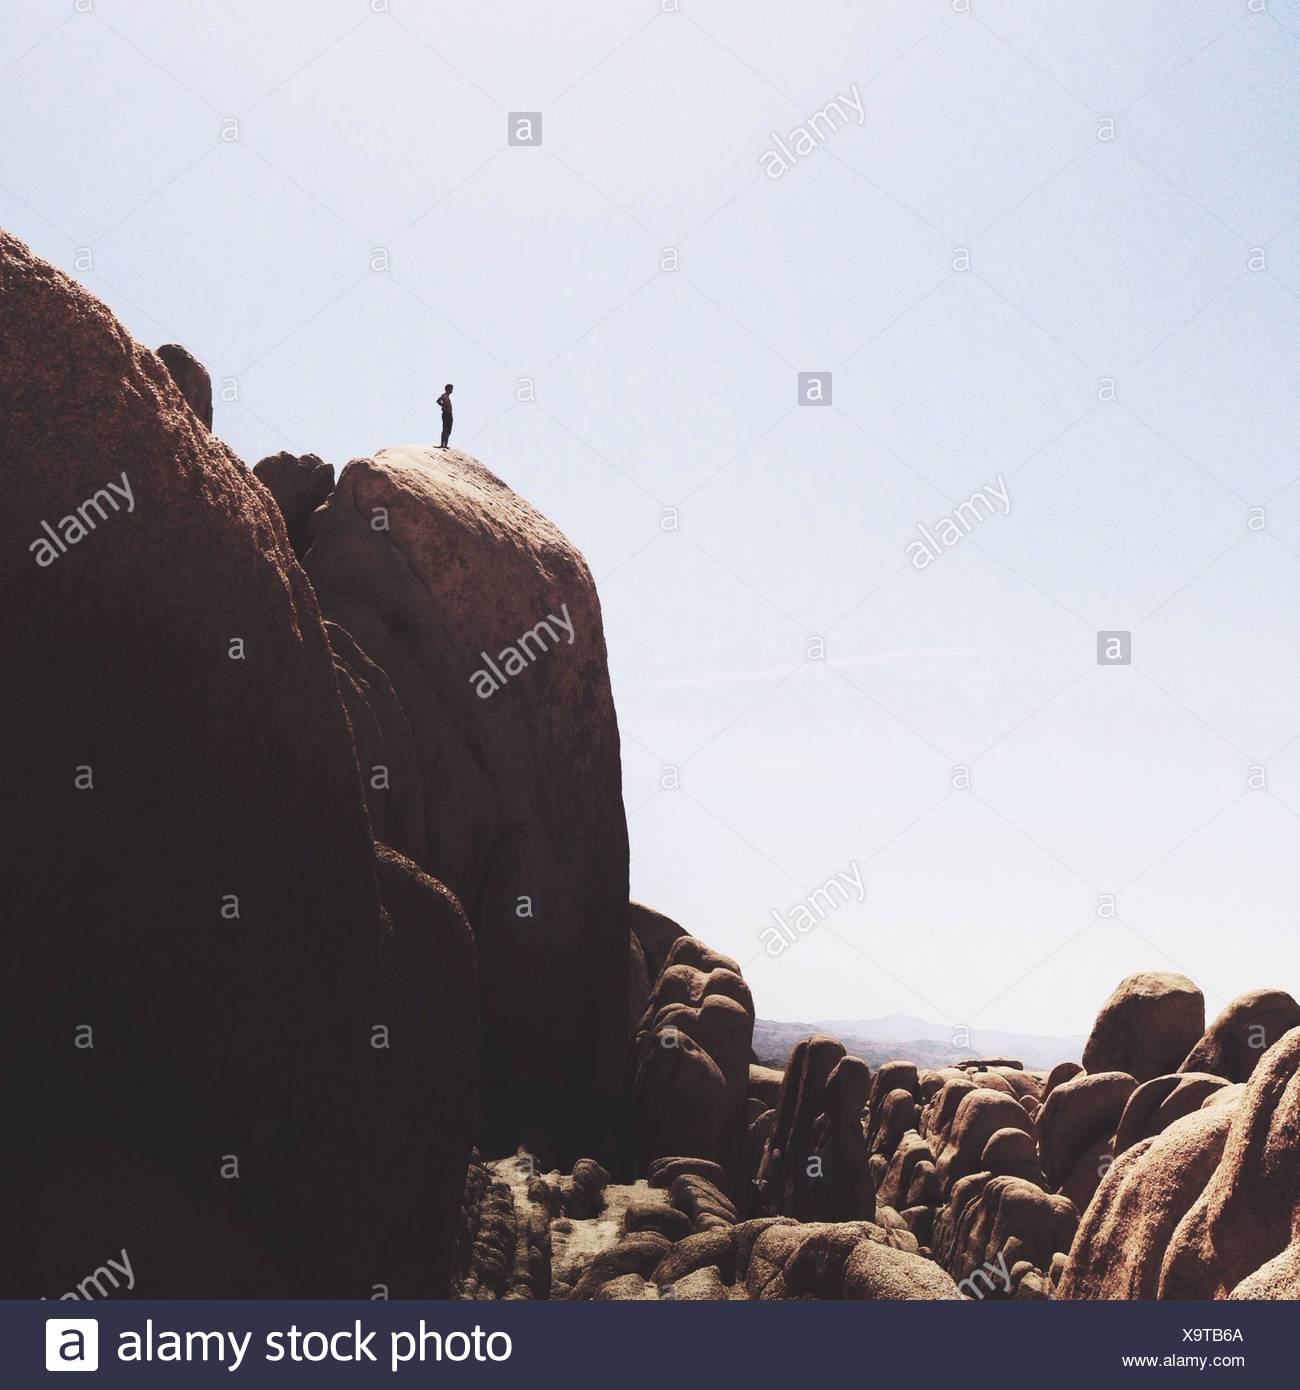 Man At Edge Of Cliff - Stock Image